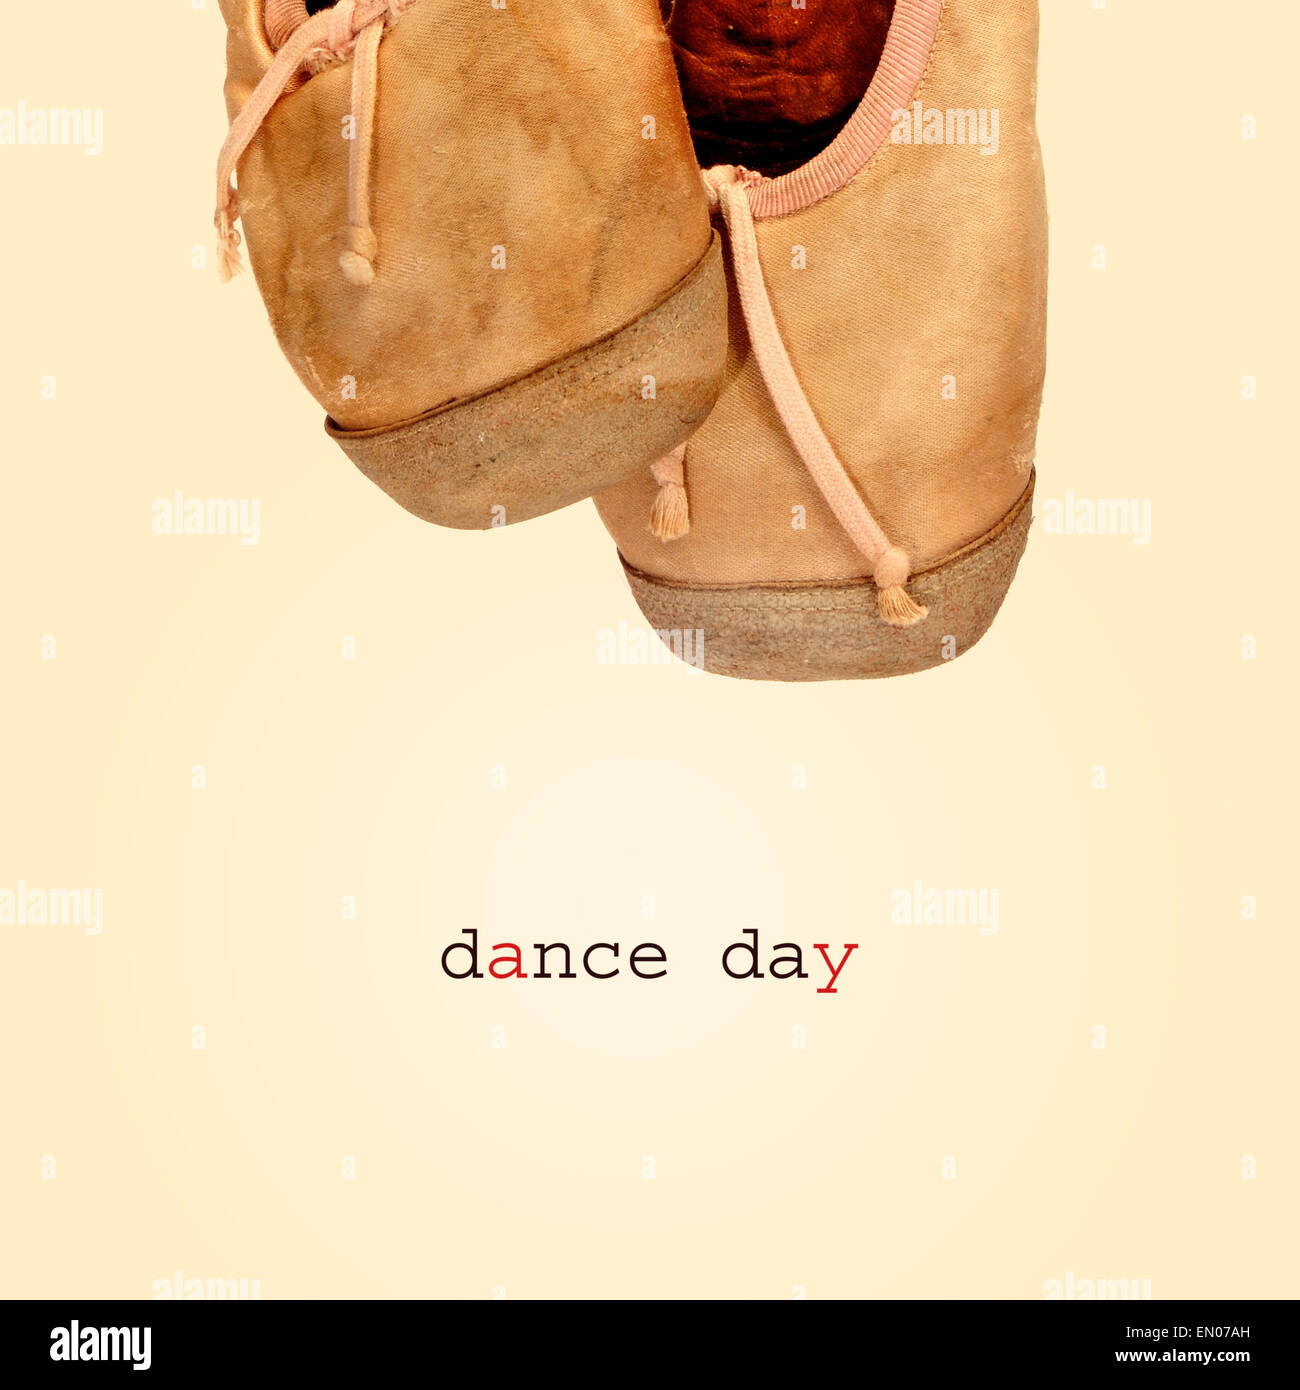 closeup of a pair of worn pointe shoes and the text dance day on a beige background, with a retro effect - Stock Image